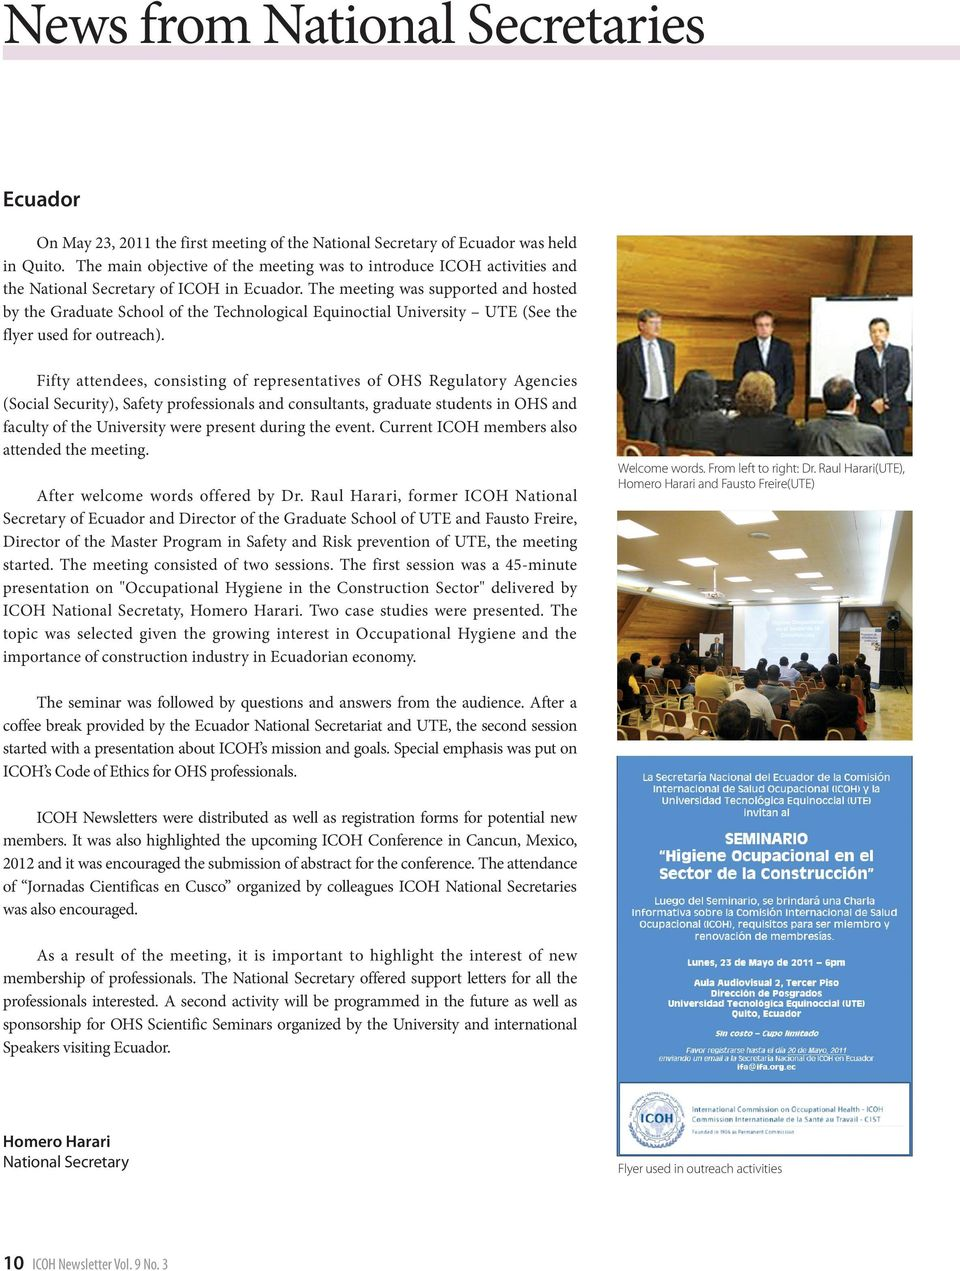 The meeting was supported and hosted by the Graduate School of the Technological Equinoctial University UTE (See the flyer used for outreach).